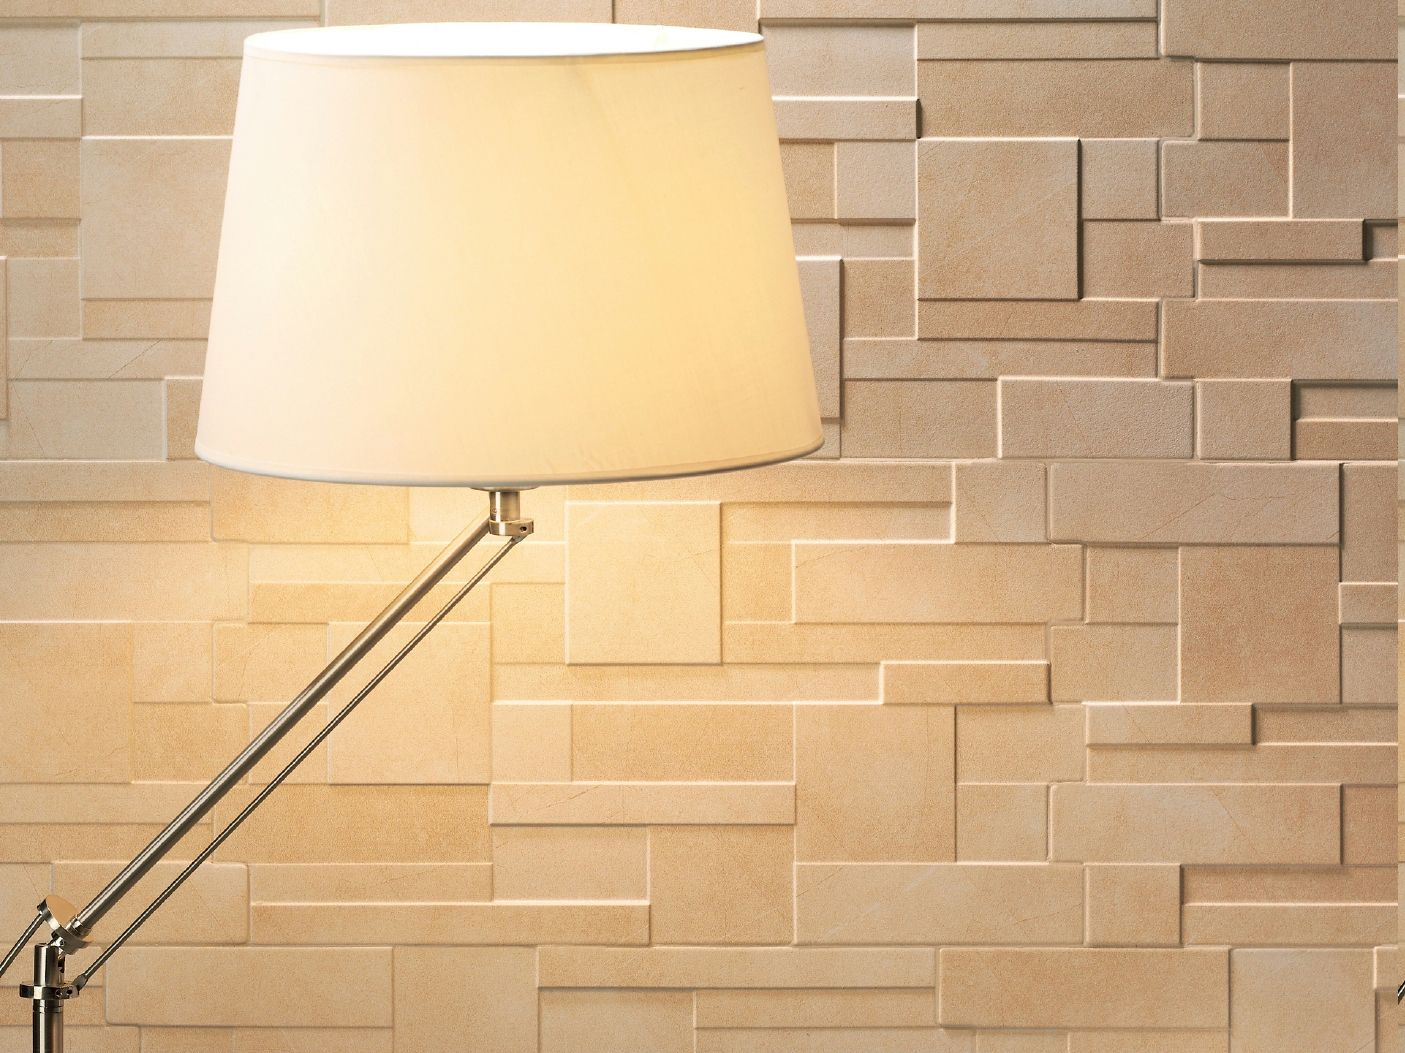 3d tiles for walls | PORCELAIN STONEWARE 3D WALL TILE MIX STONE ...